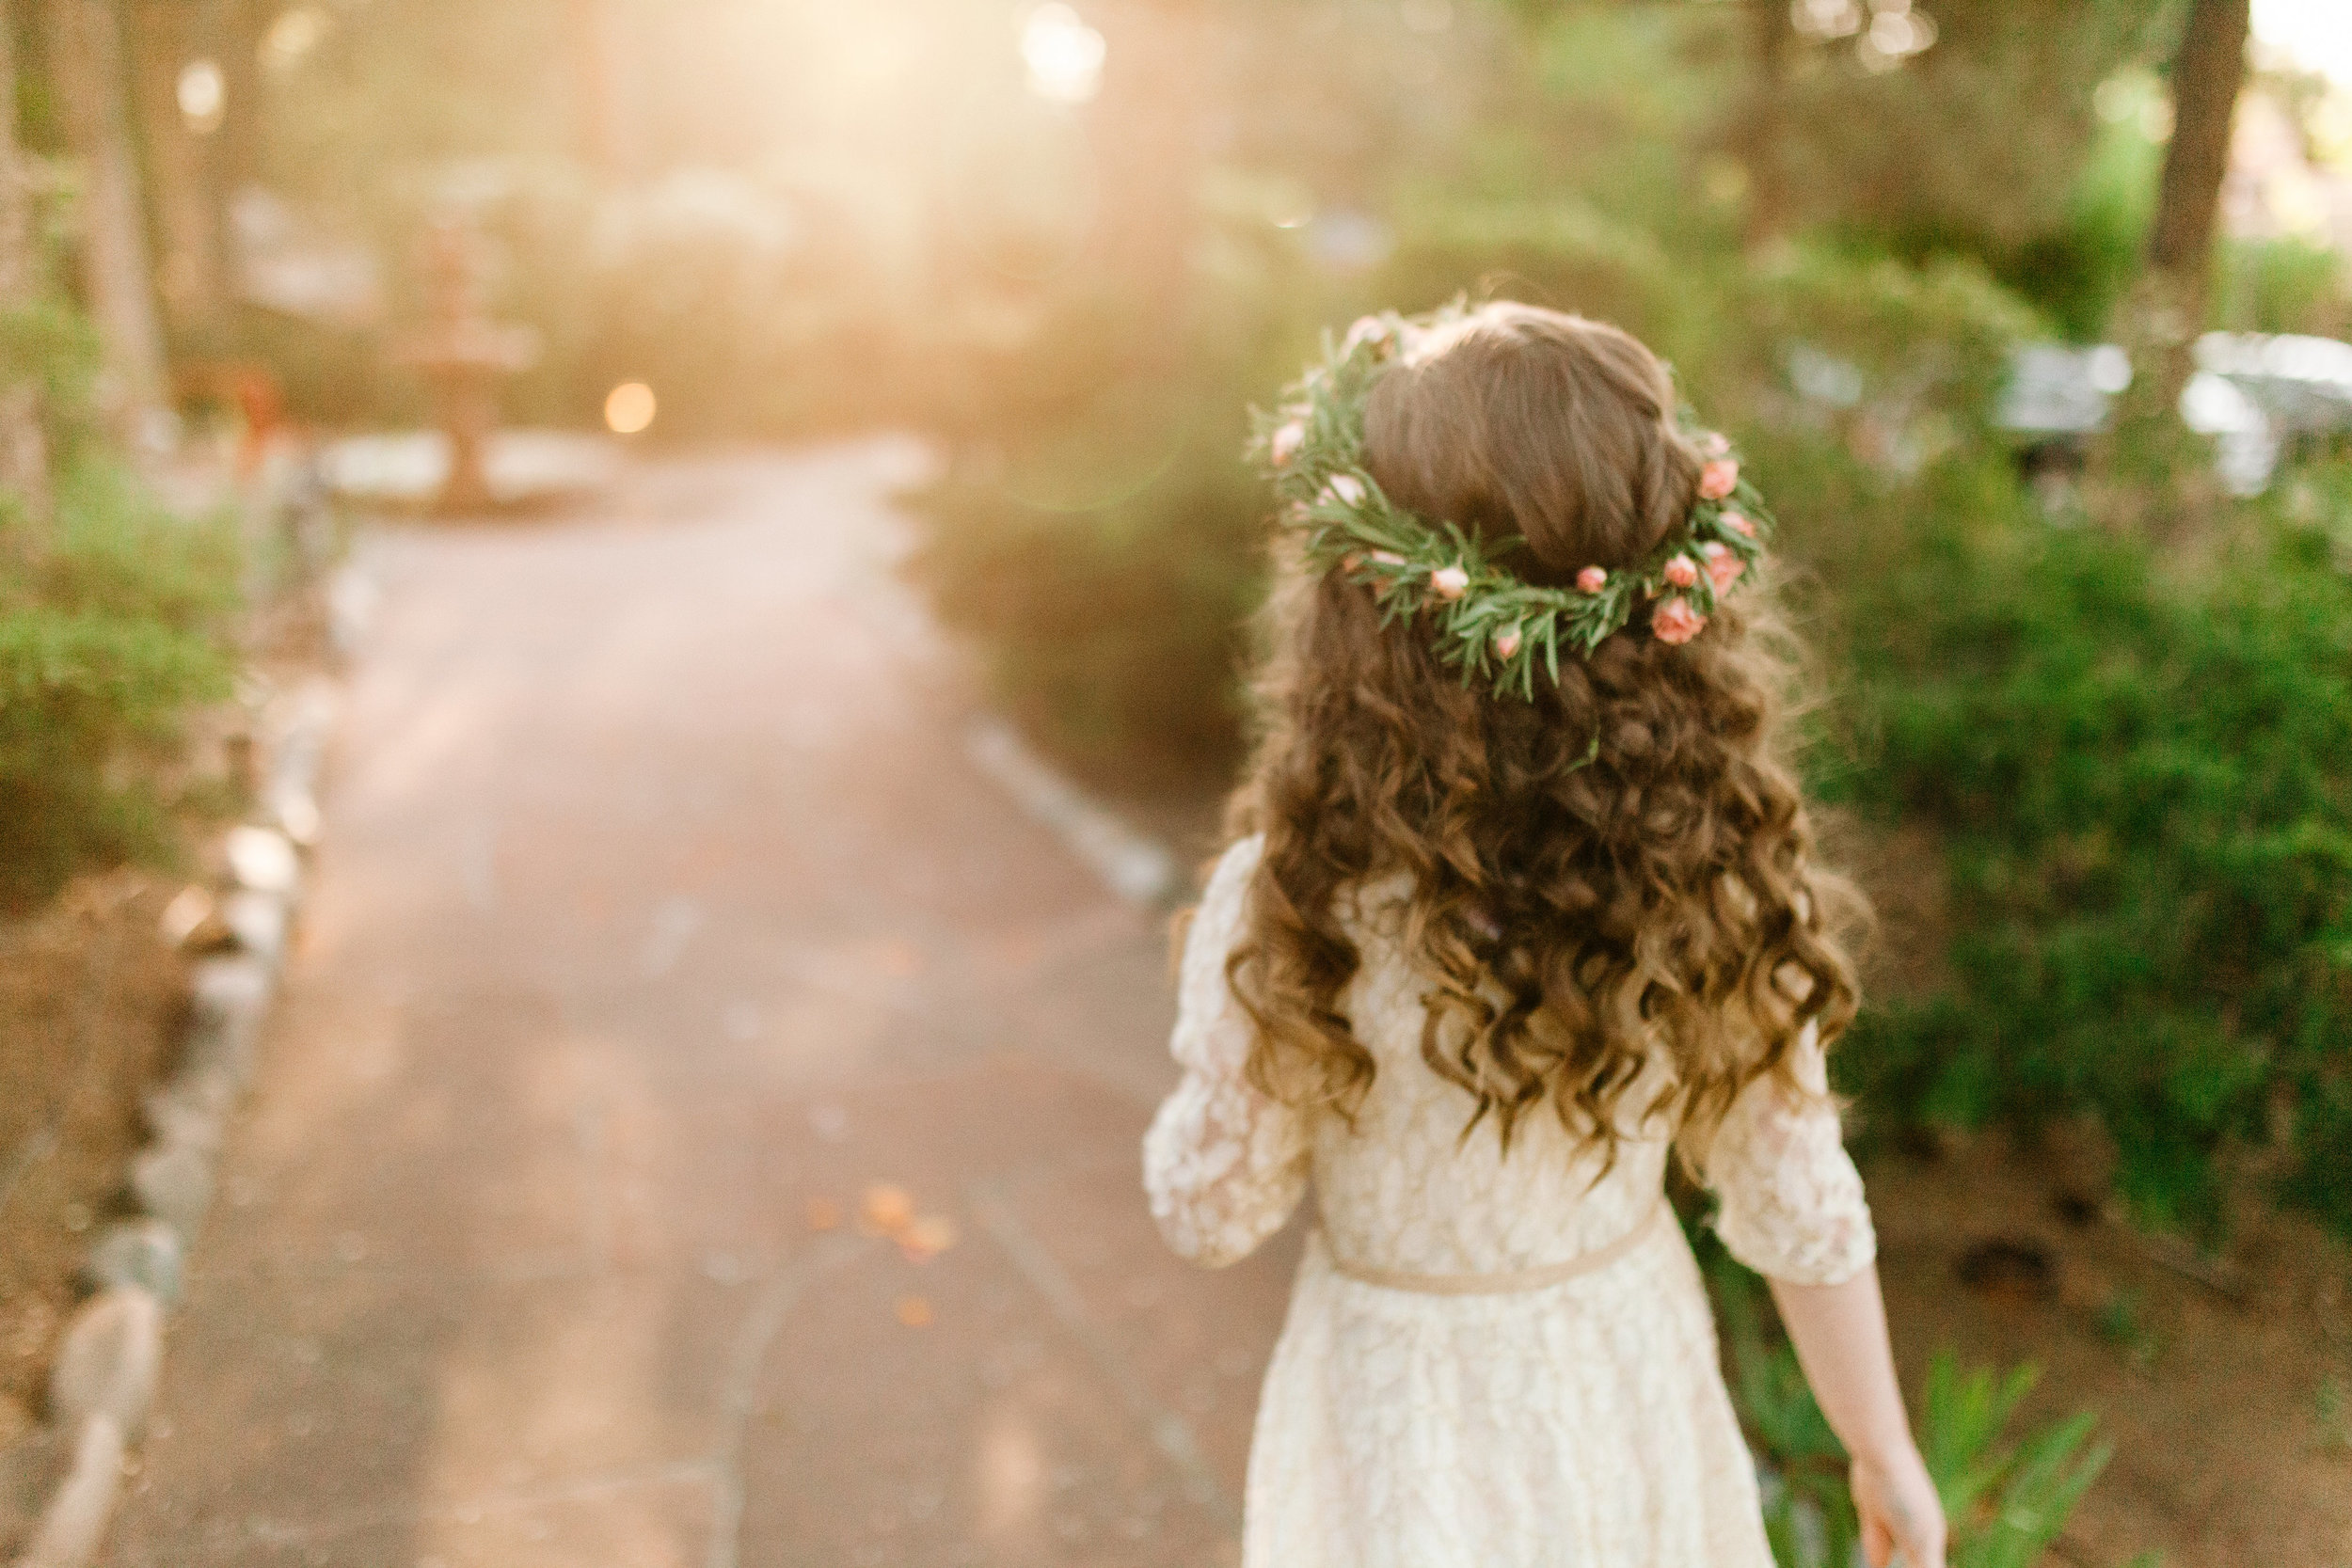 My 8-year-old niece, Savannah, after finishing her flower girl duties (photo by  Joni Bilderback ; floral crown by  Floral Designs by Jessi )